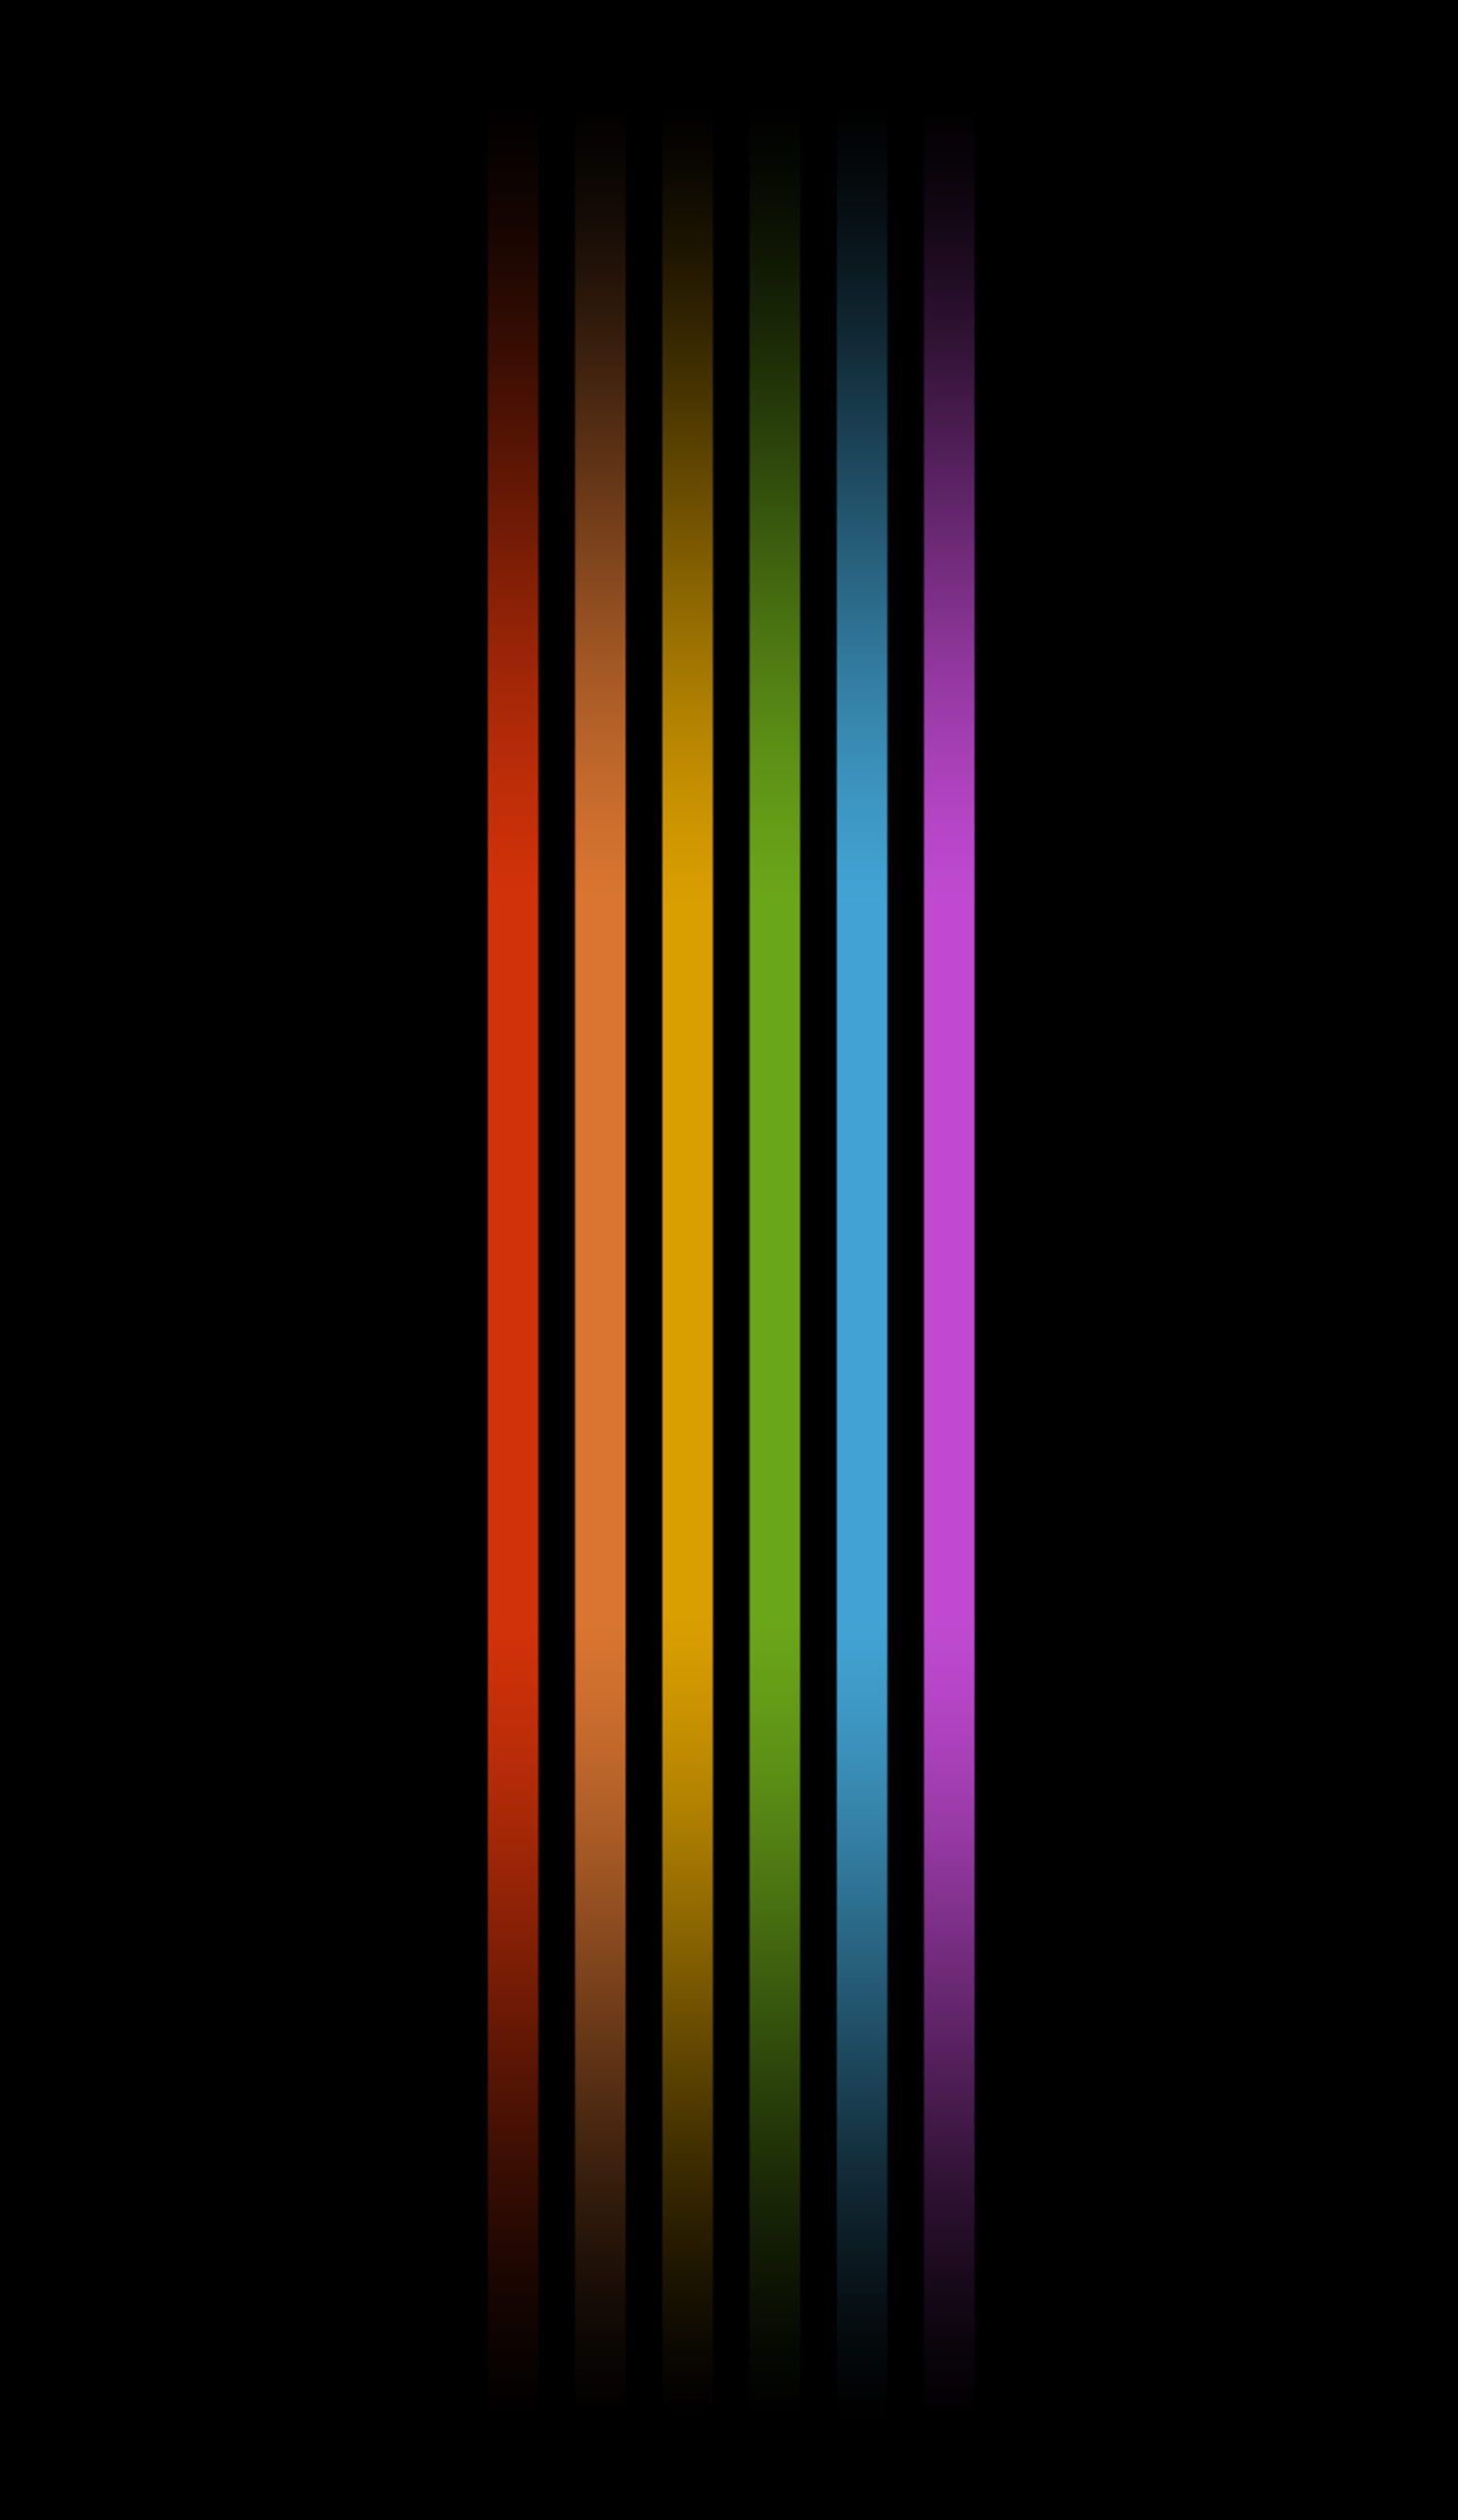 Pin By Hannah Marcello On R A I Nb O W S Rainbow Wallpaper Pride Colors Black Iphone Background